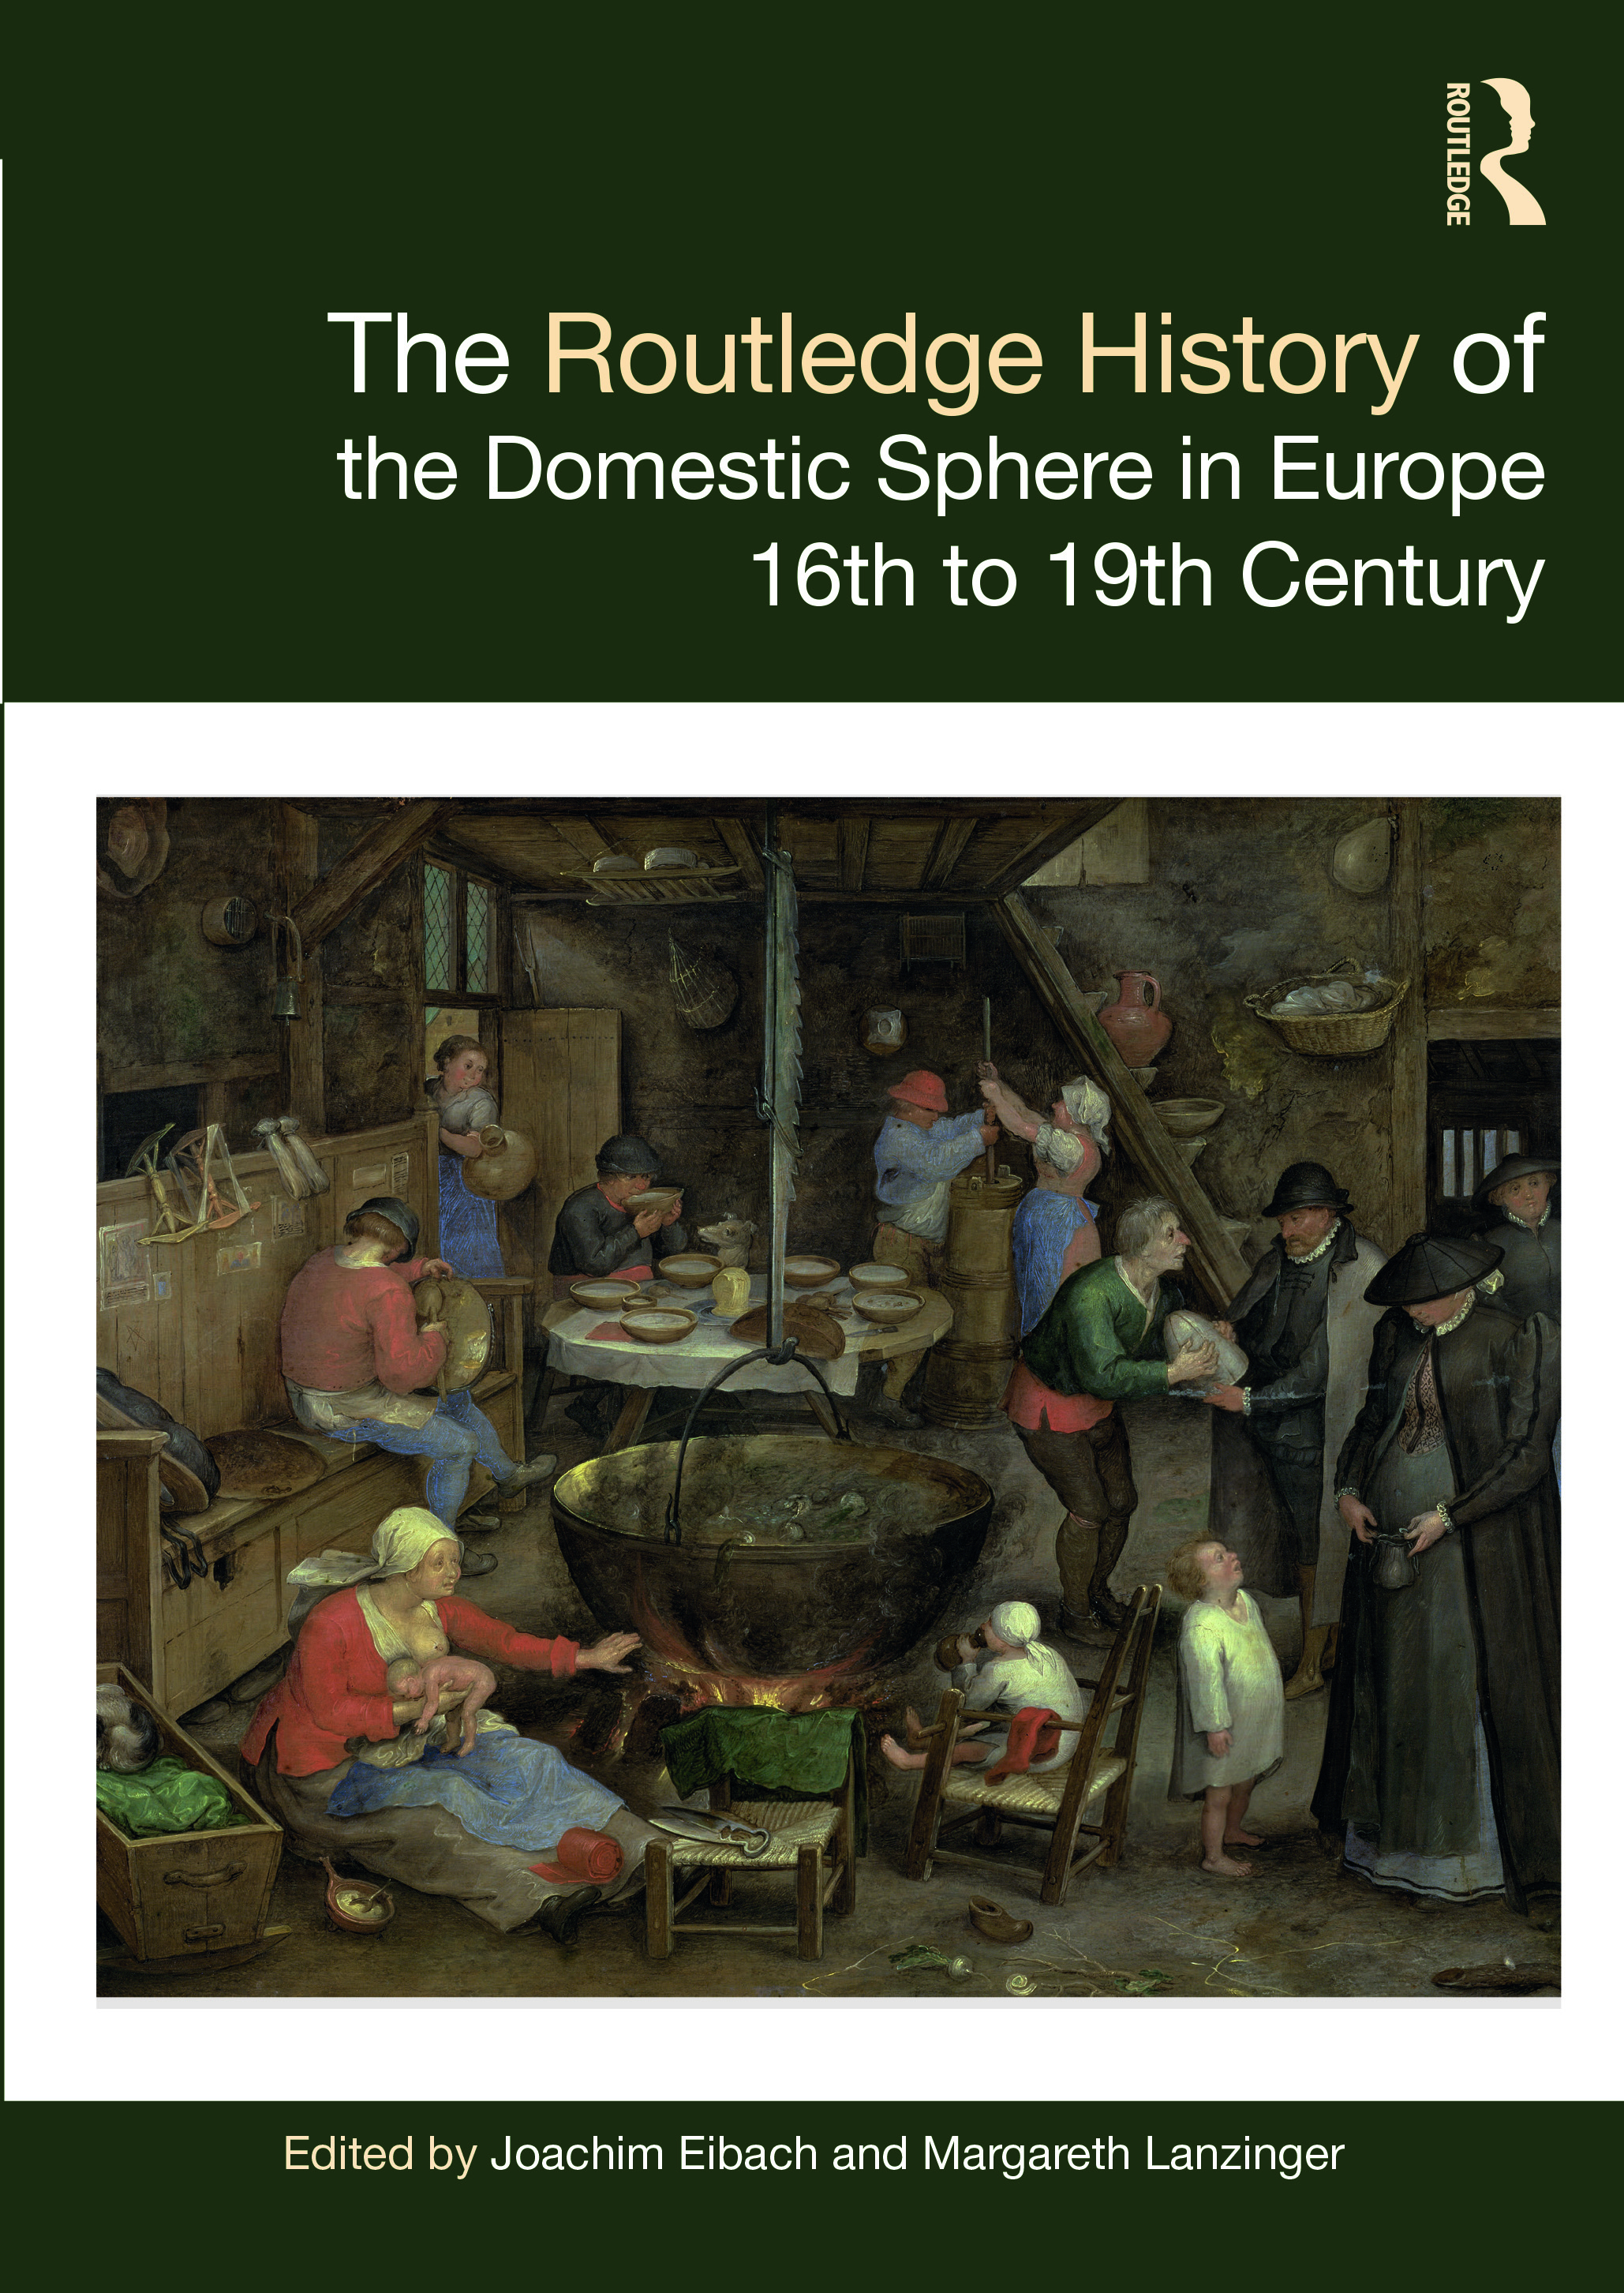 The national house and home in         Polish literature and culture